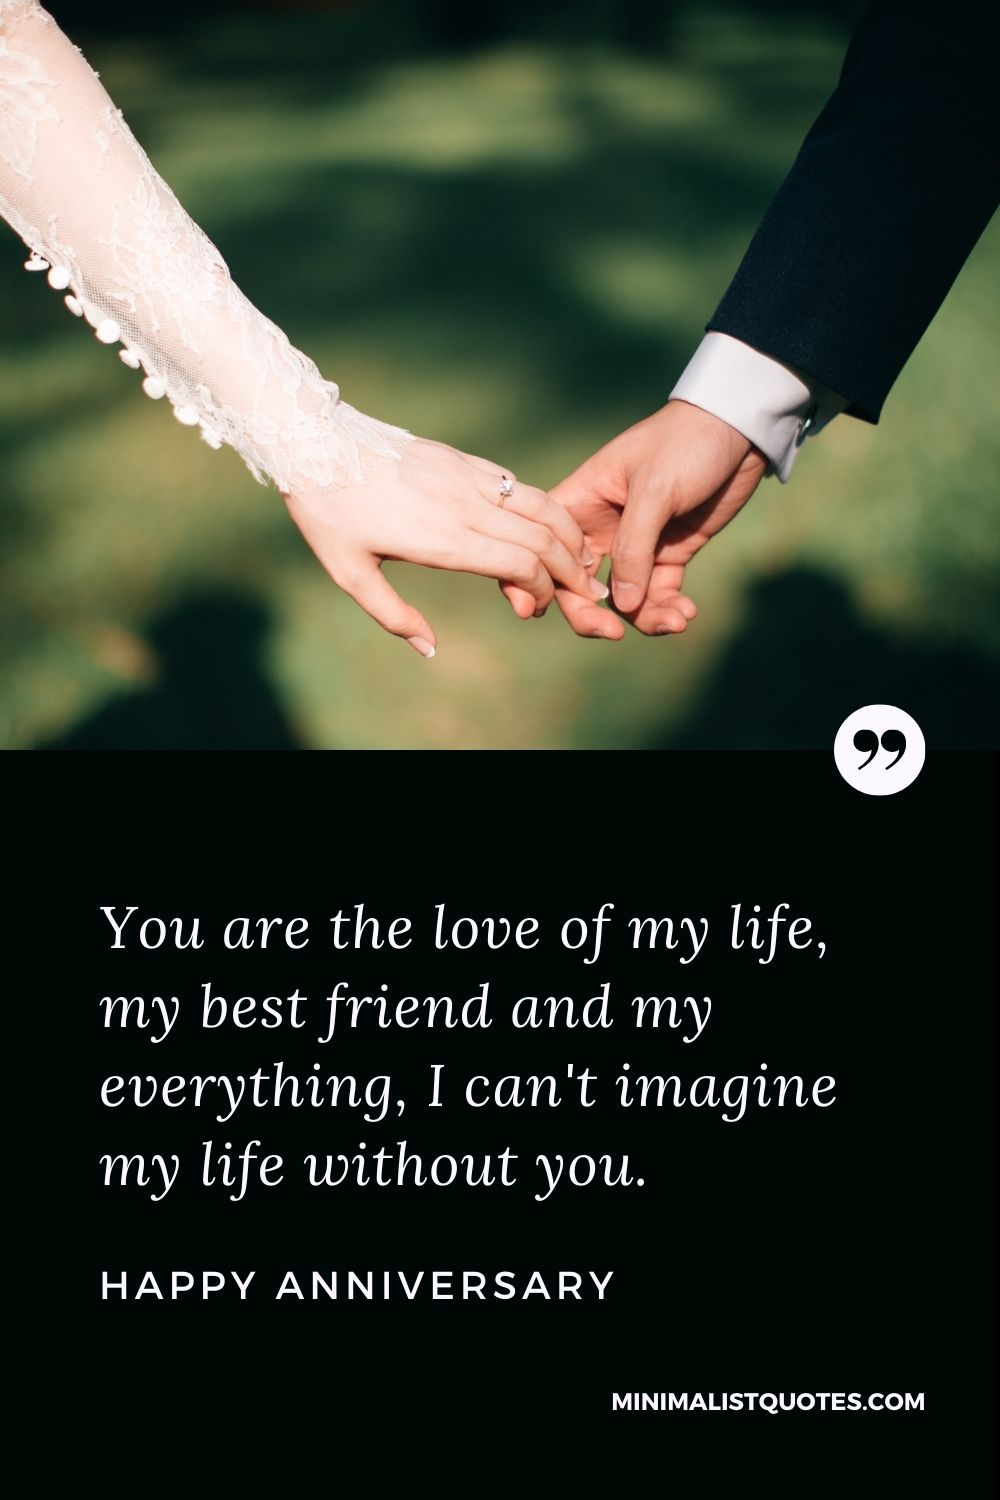 Happy Anniversary Wishes - You are the love of my life, my best friend and my everything, I can't imagine my life without you.